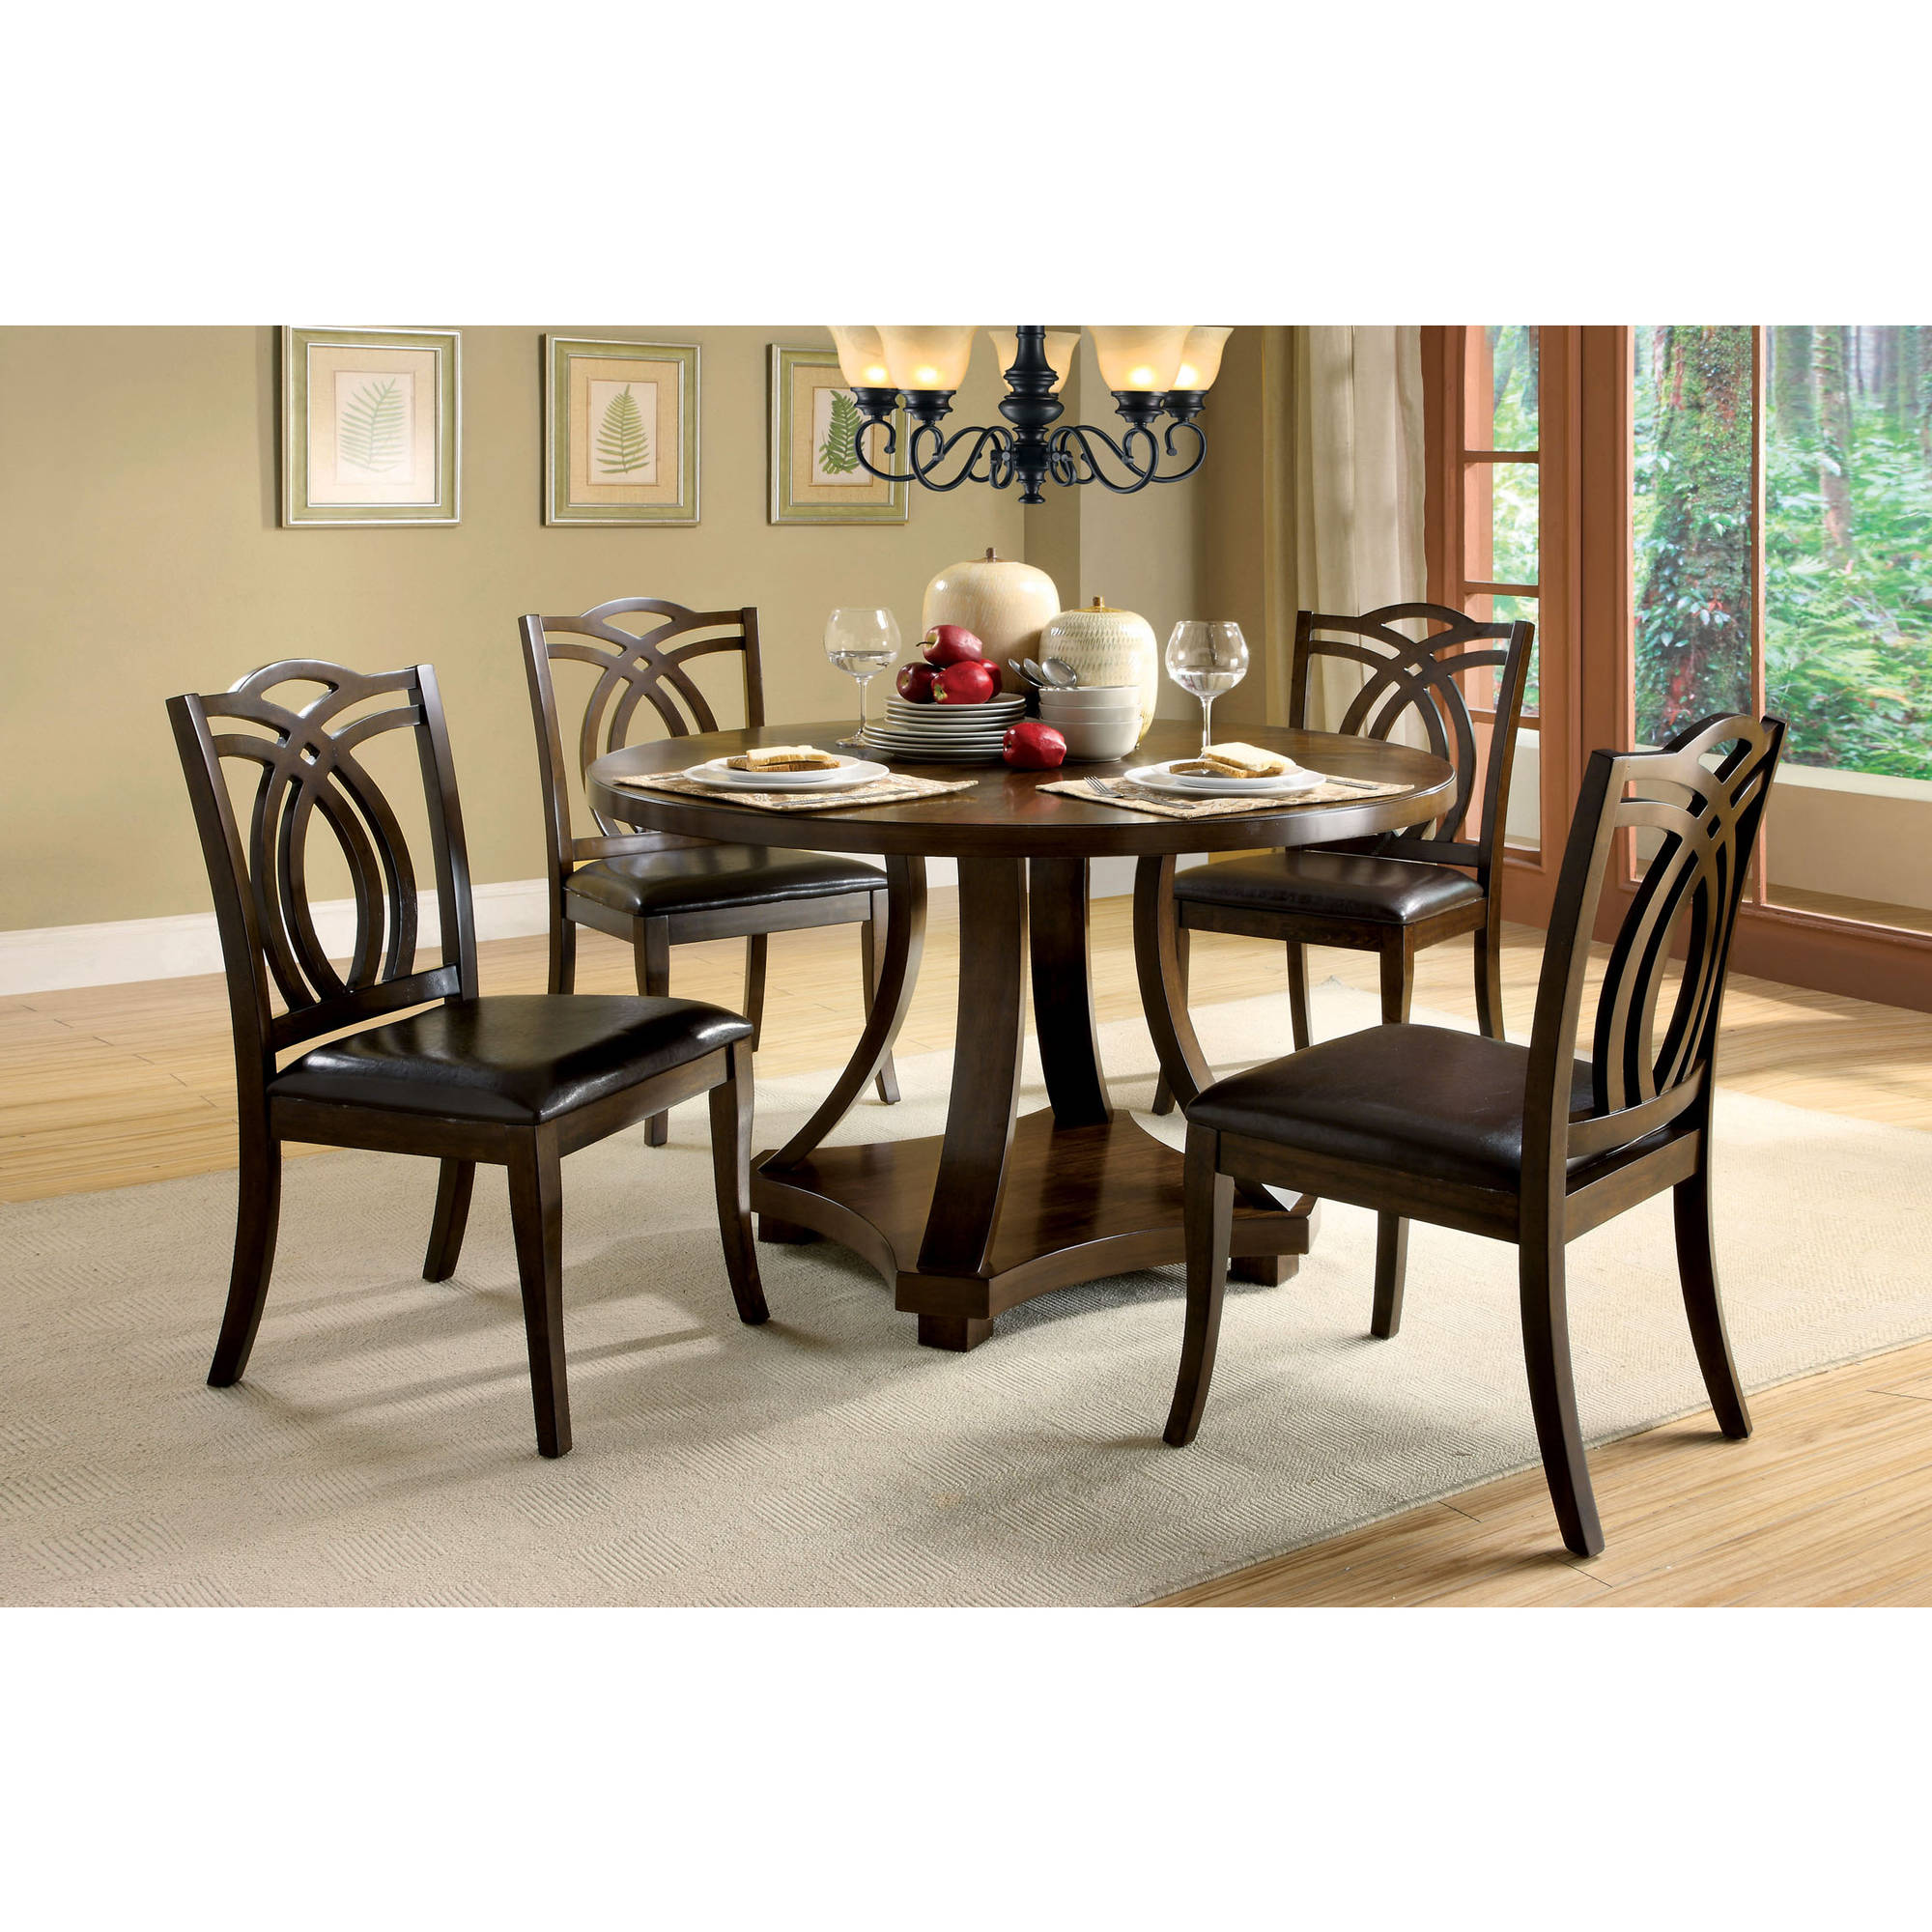 Furniture of America Shice 5-Piece Round Dining Set, Dark Oak